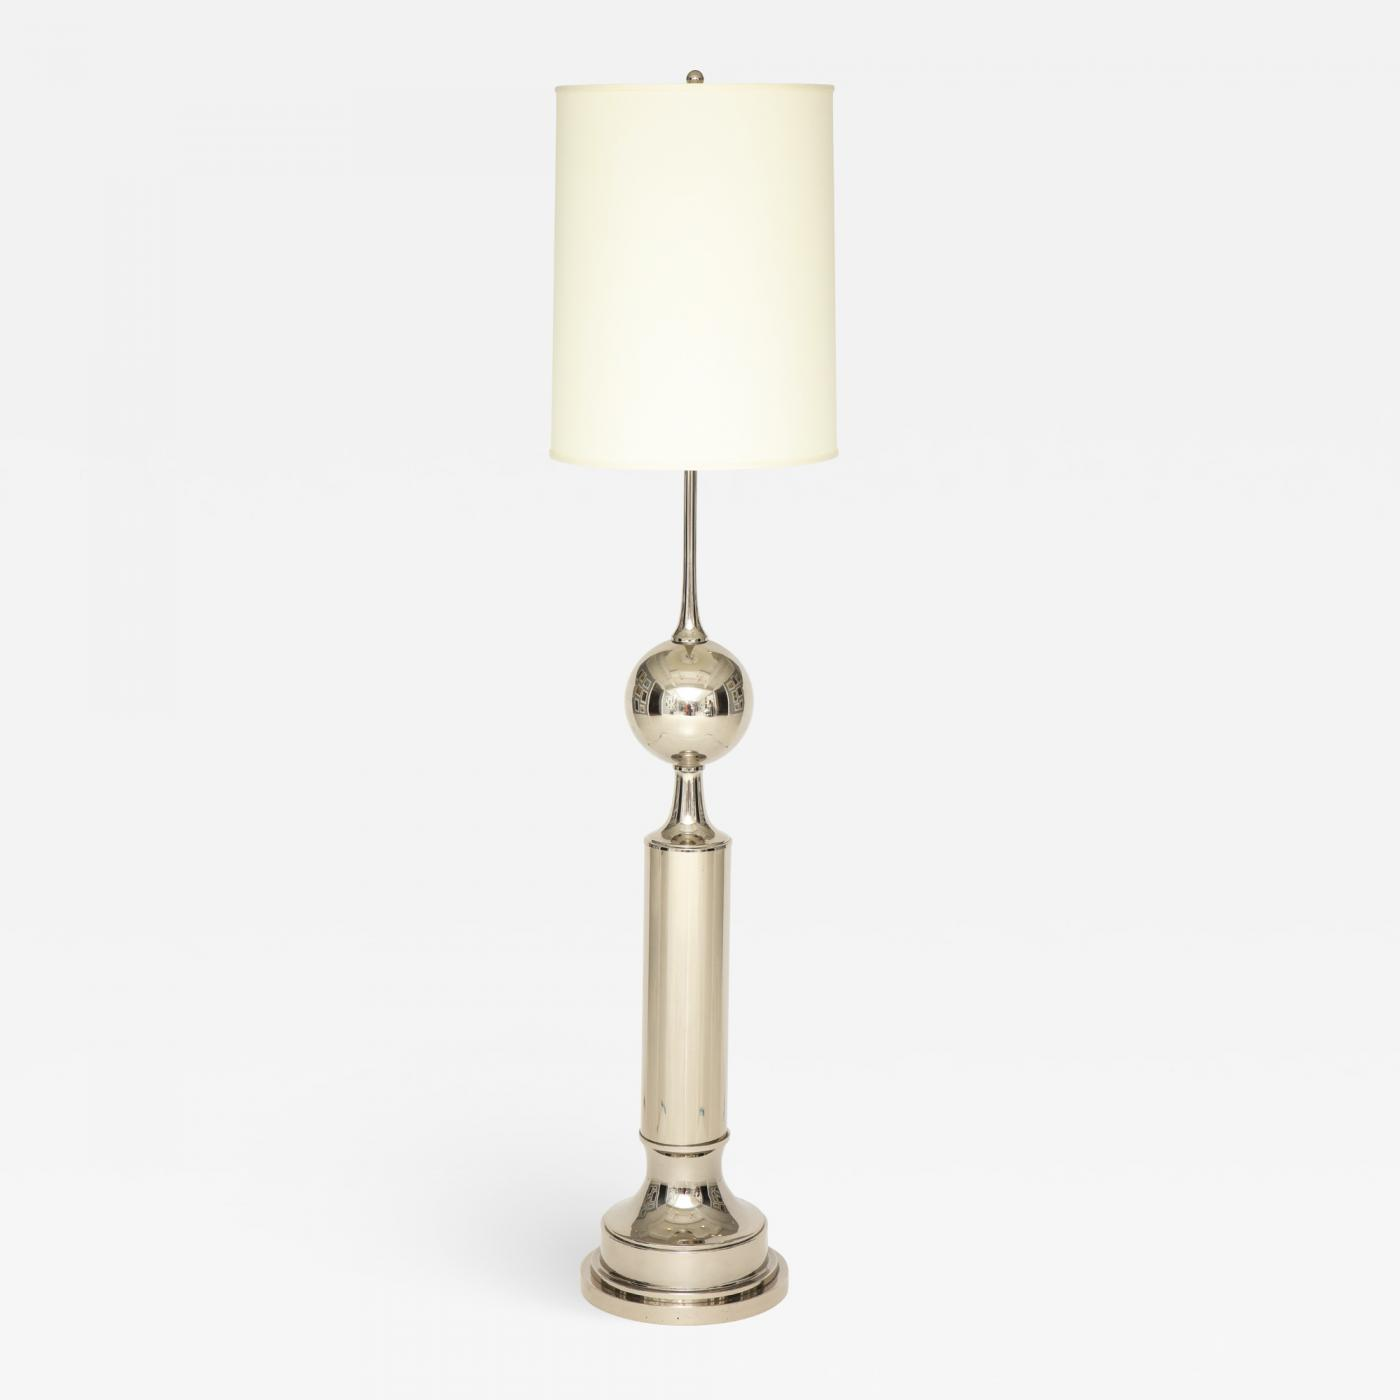 A French 40's Floor Lamp. Crafted on nickel metal.